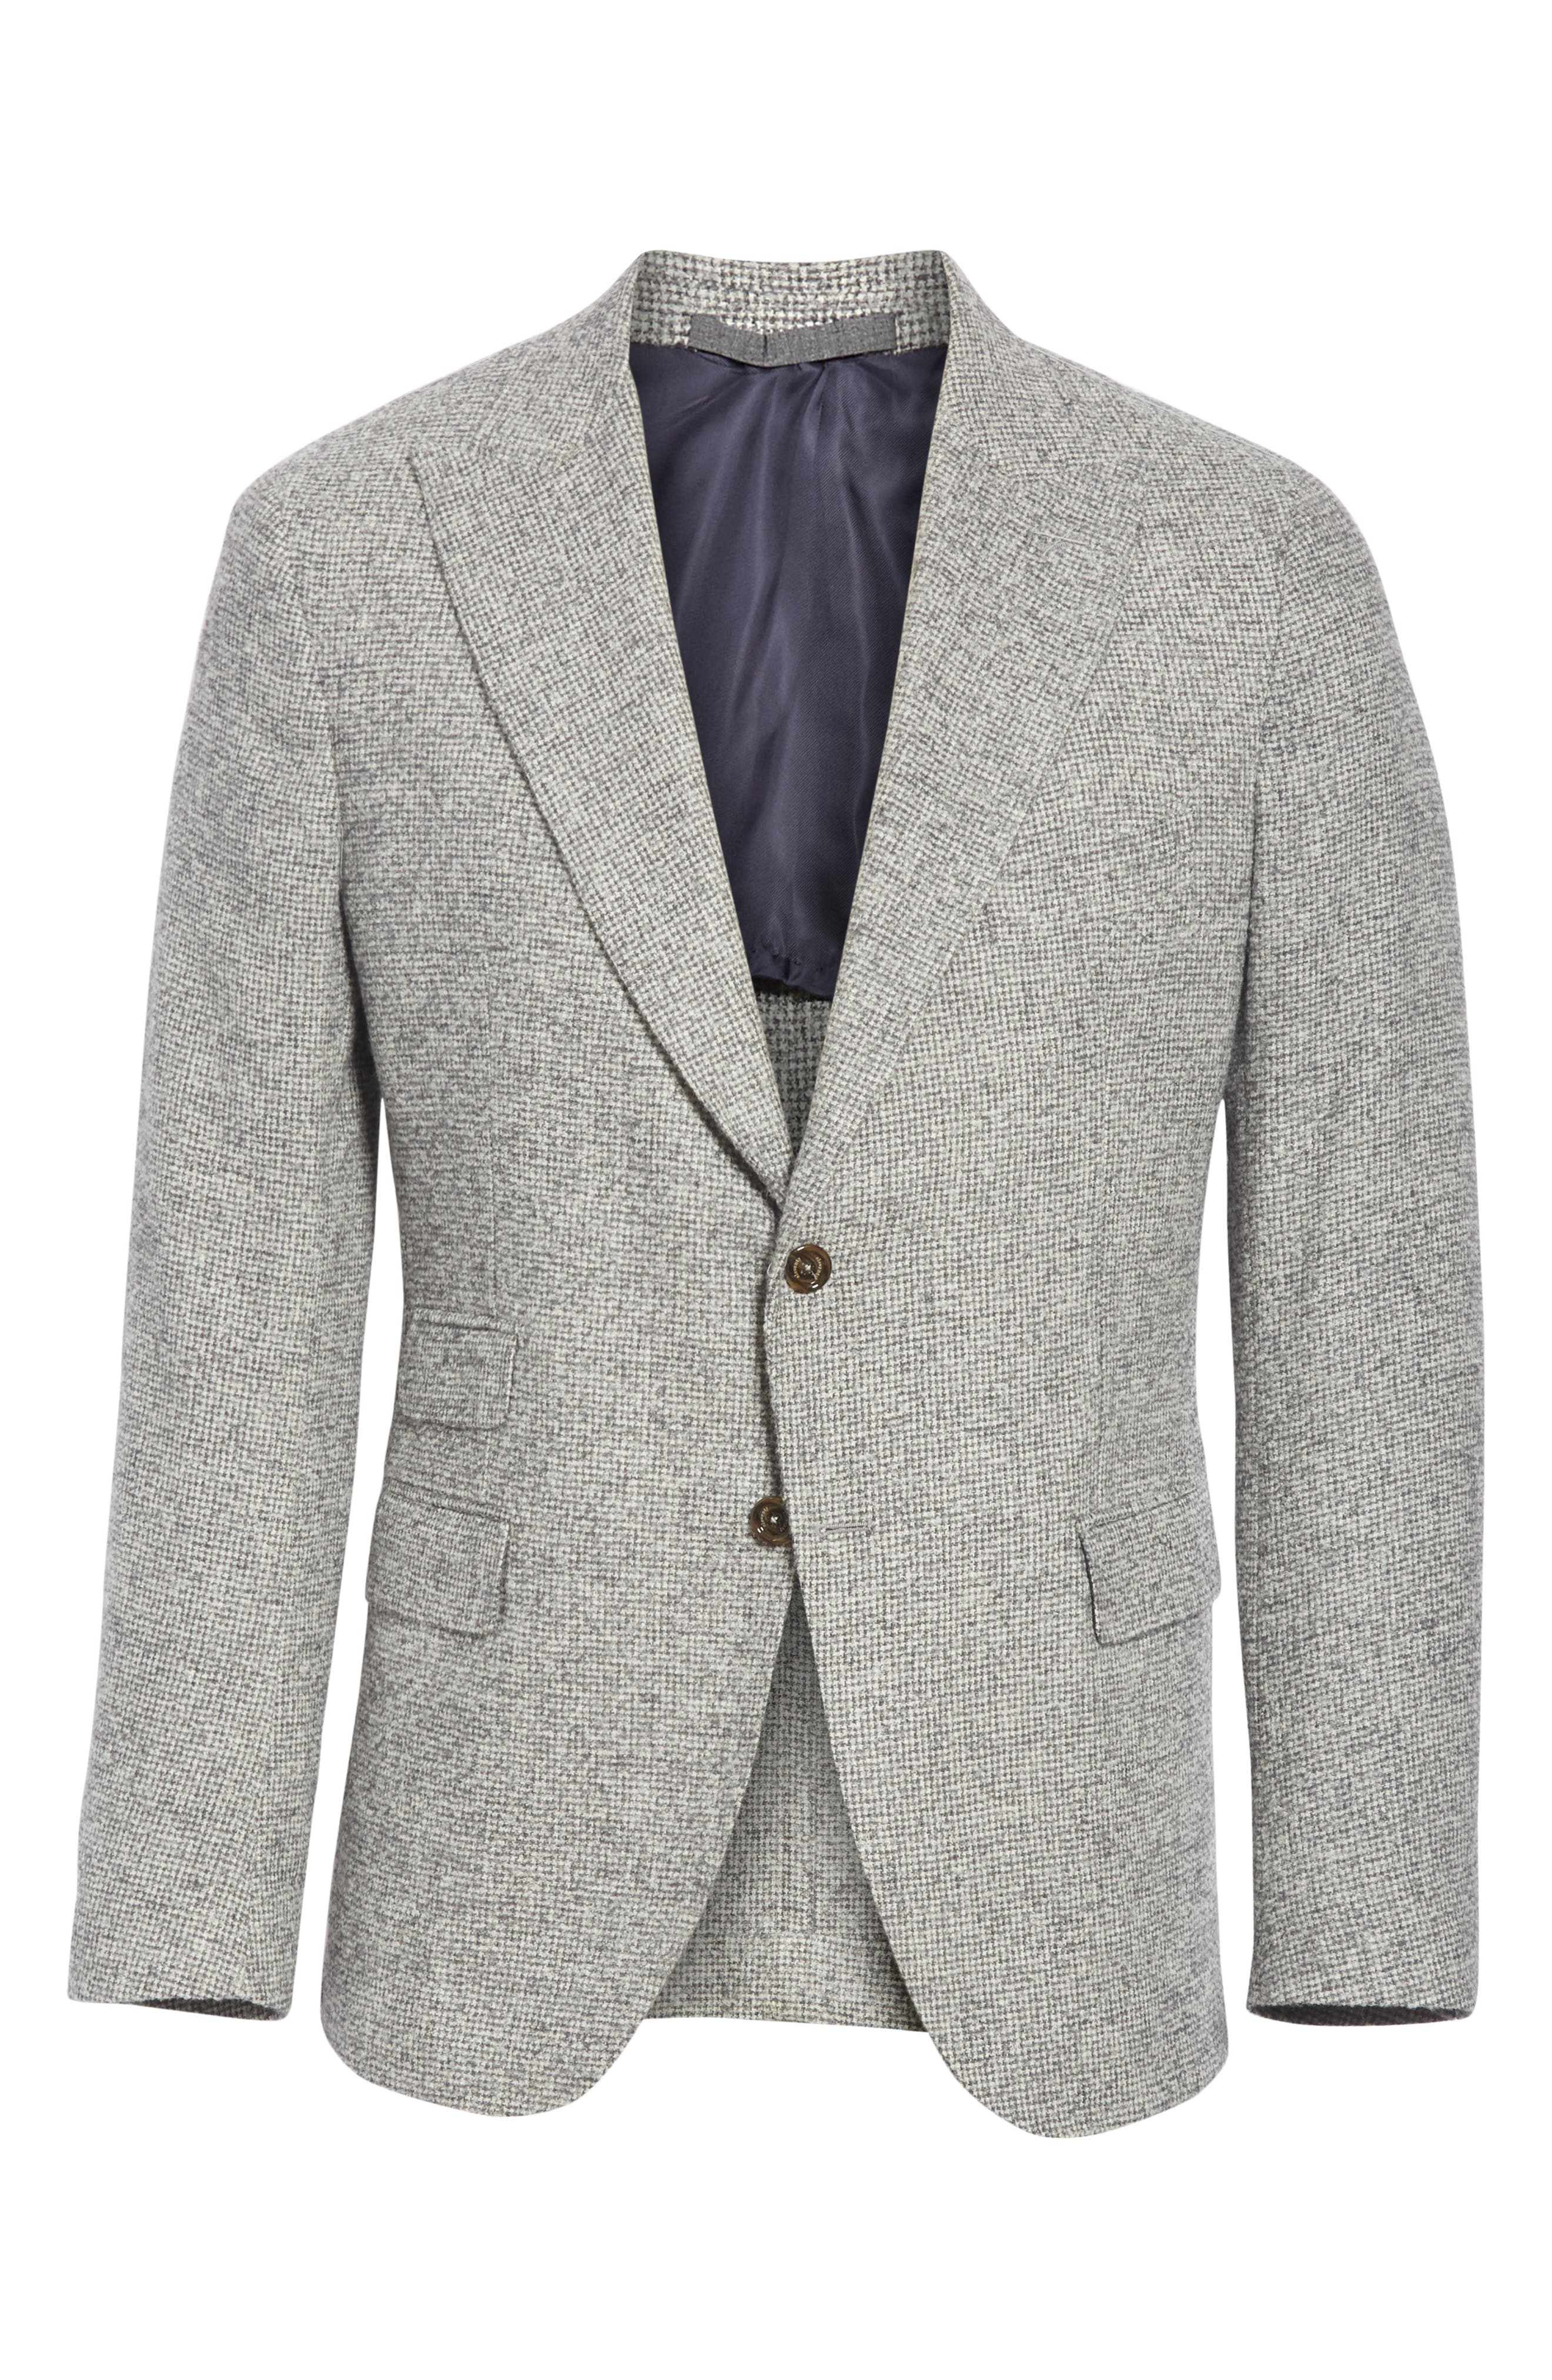 Trim Fit Houndstooth Alpaca Wool Blend Sport Coat,                             Alternate thumbnail 5, color,                             GREY